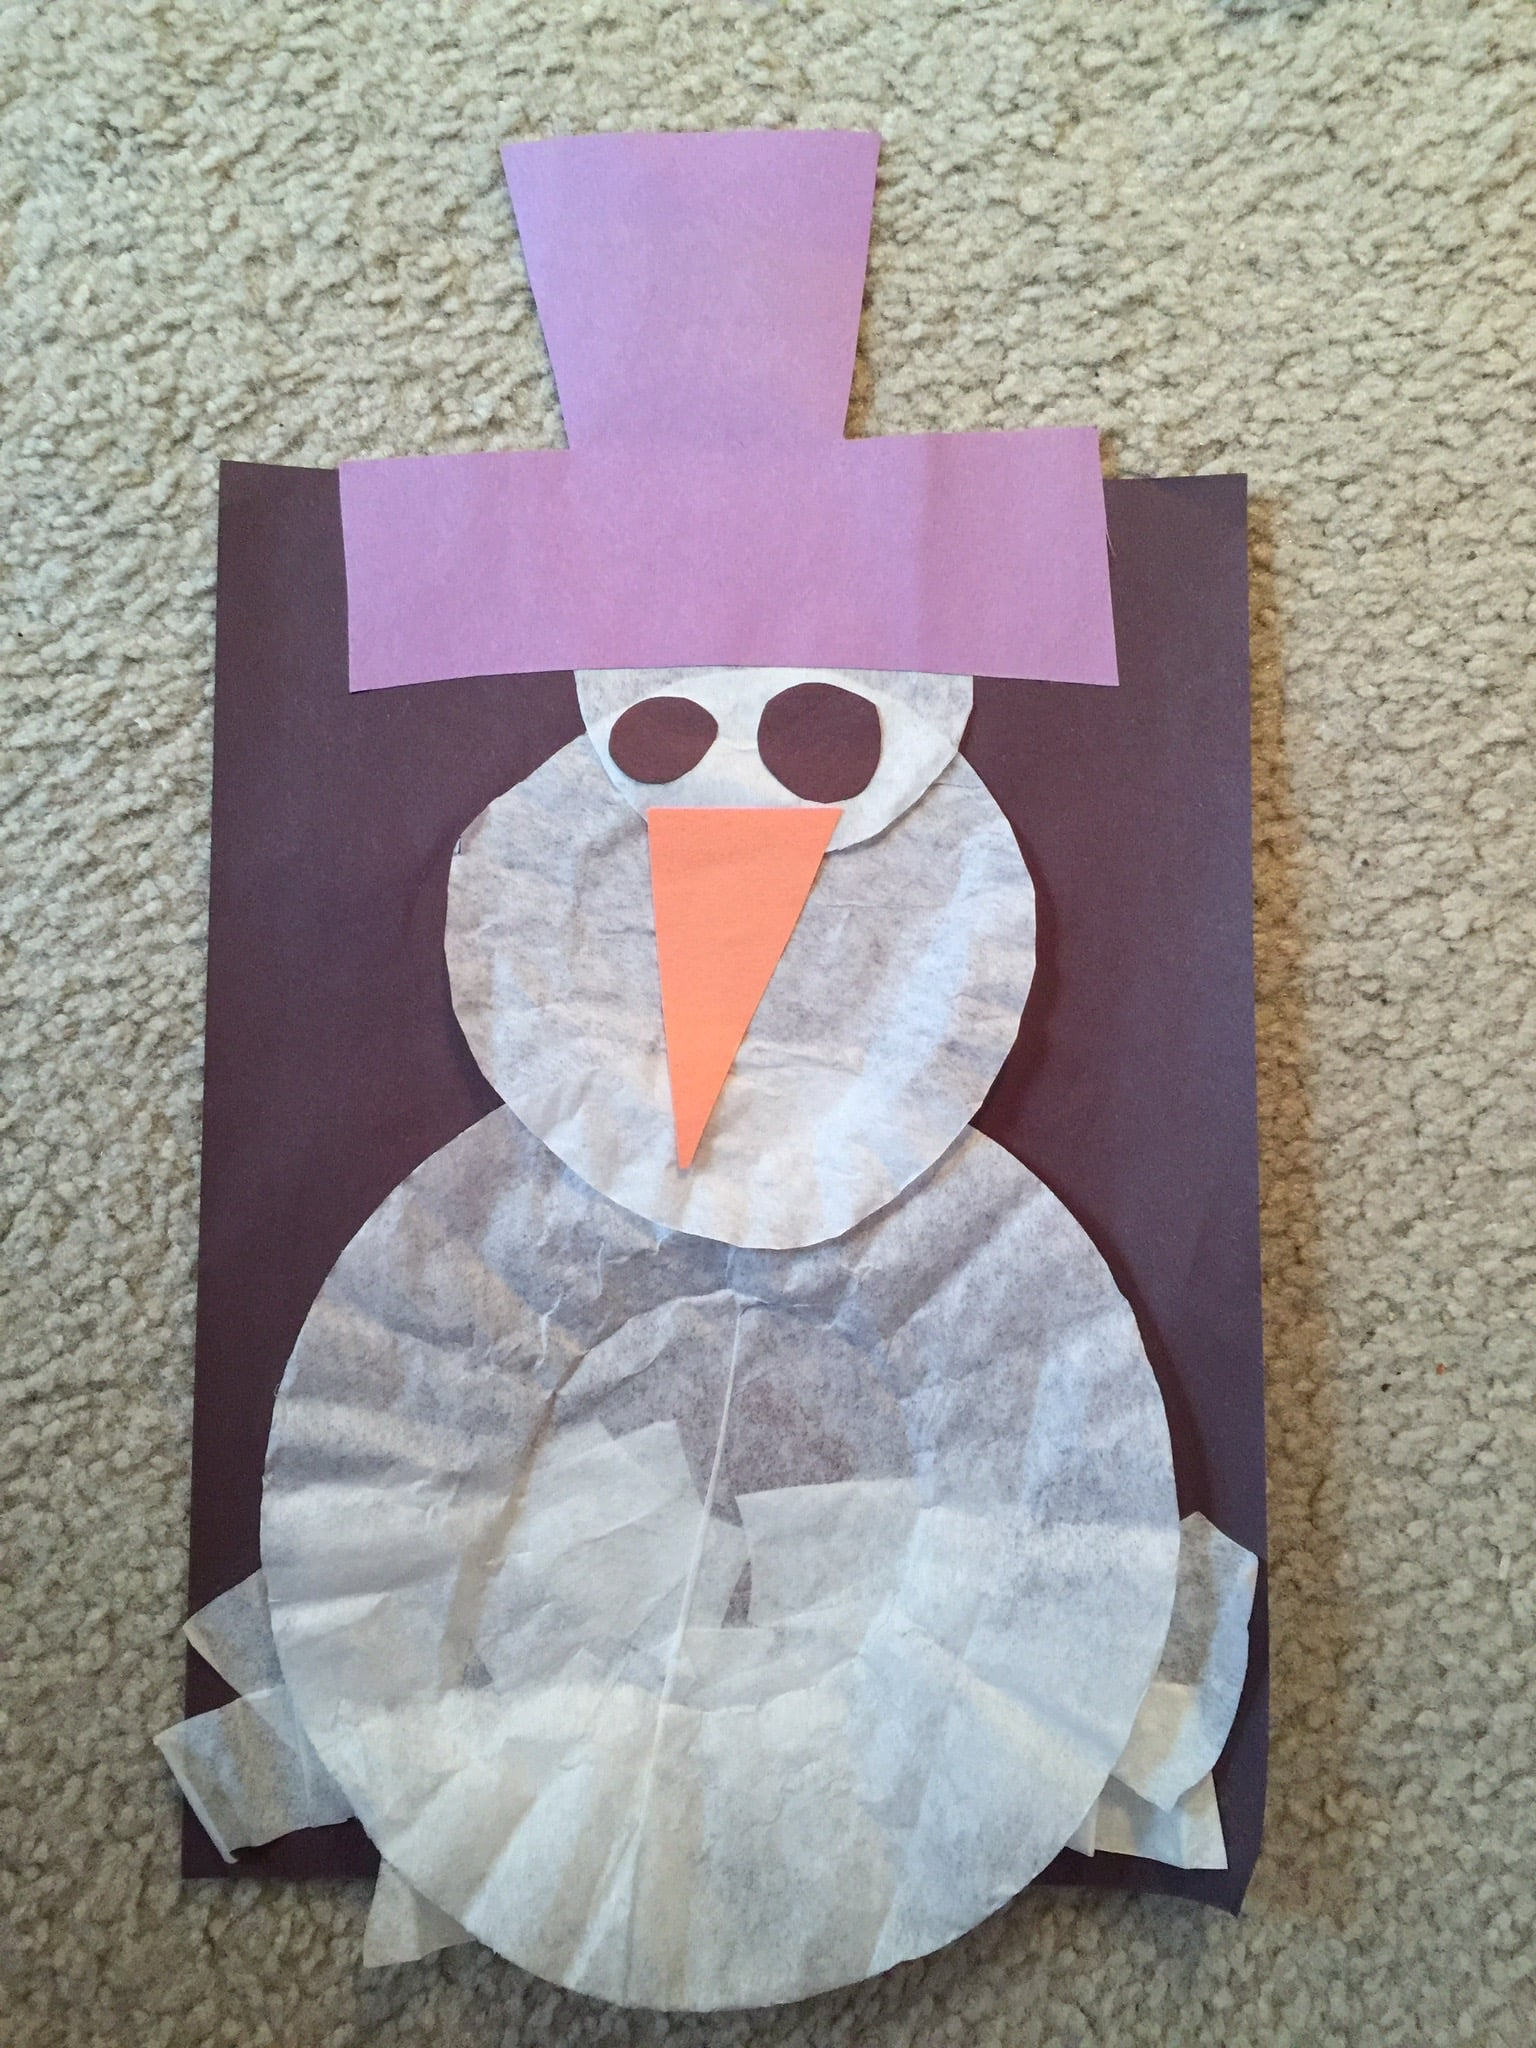 We aren't sure if Frosty's purple hat is canonical